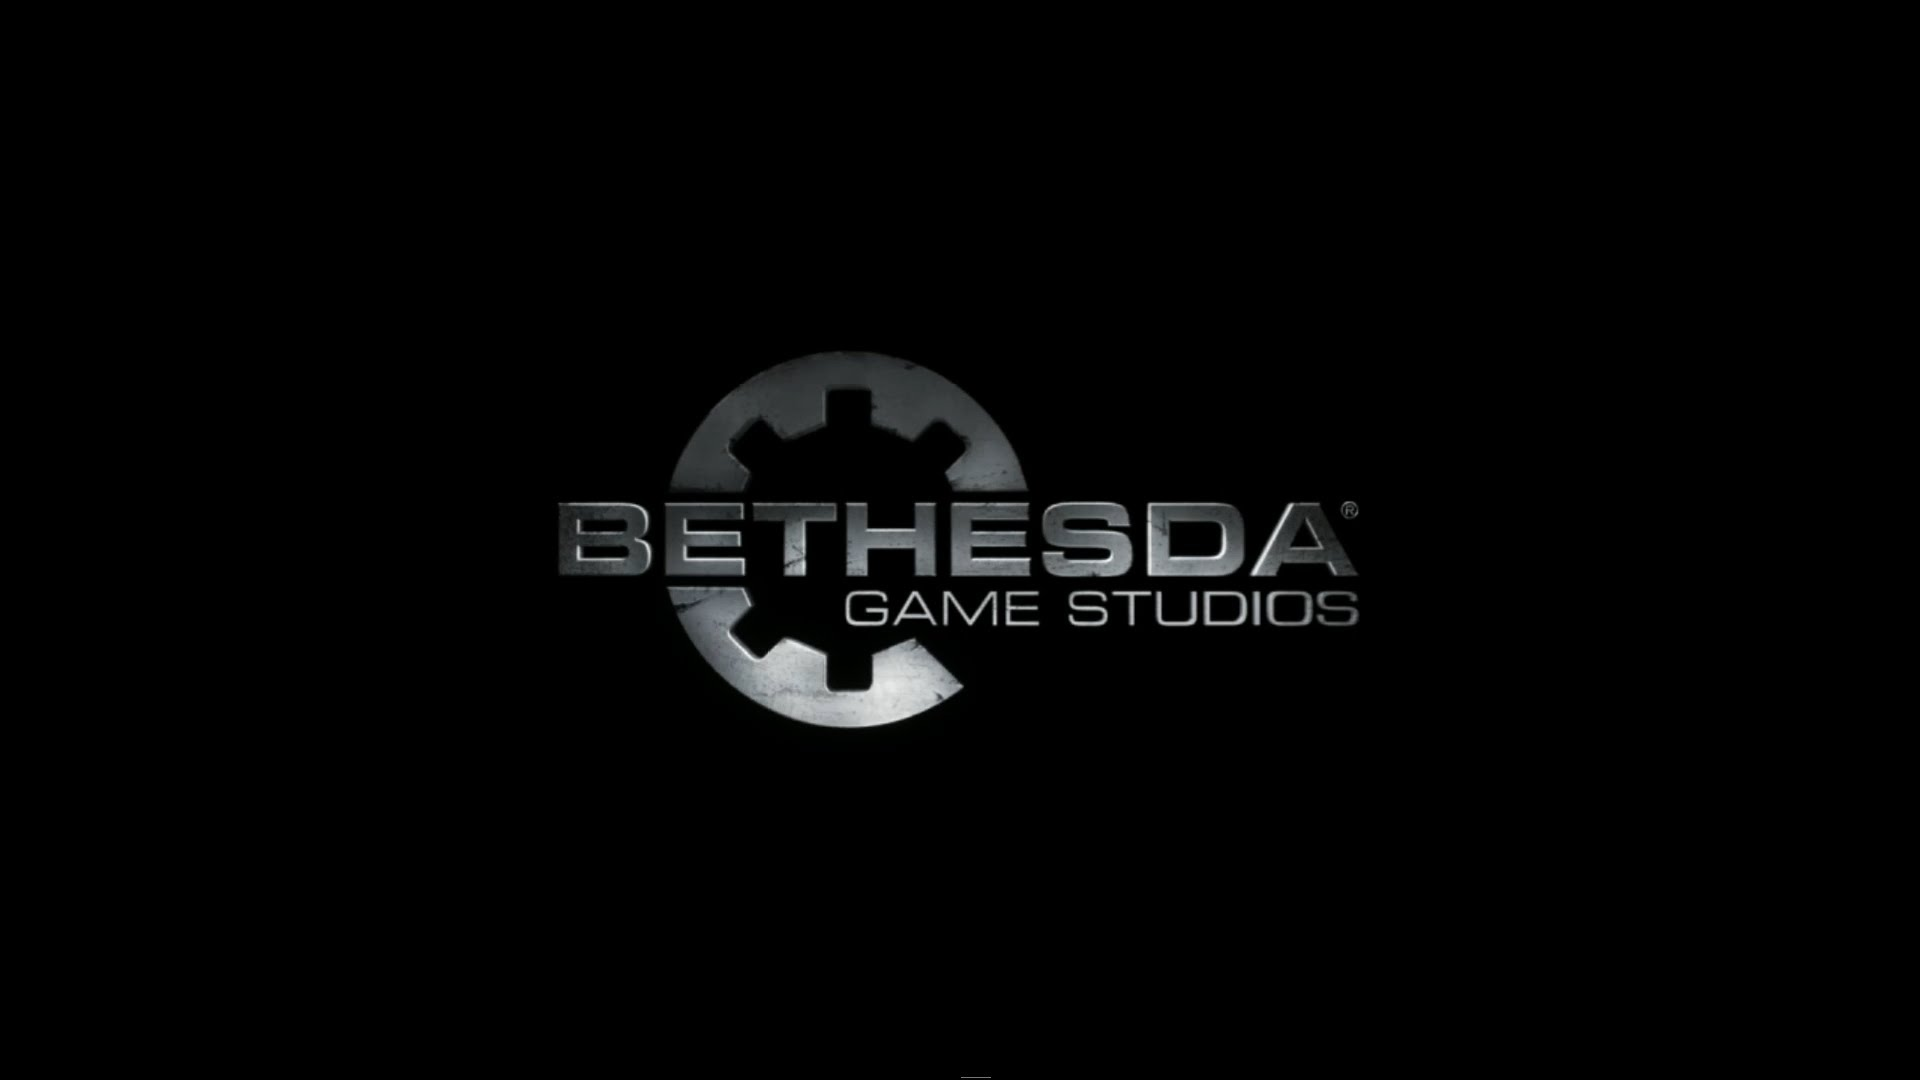 Fallout Developer Bethesda Game Studios Opens New Office in Austin